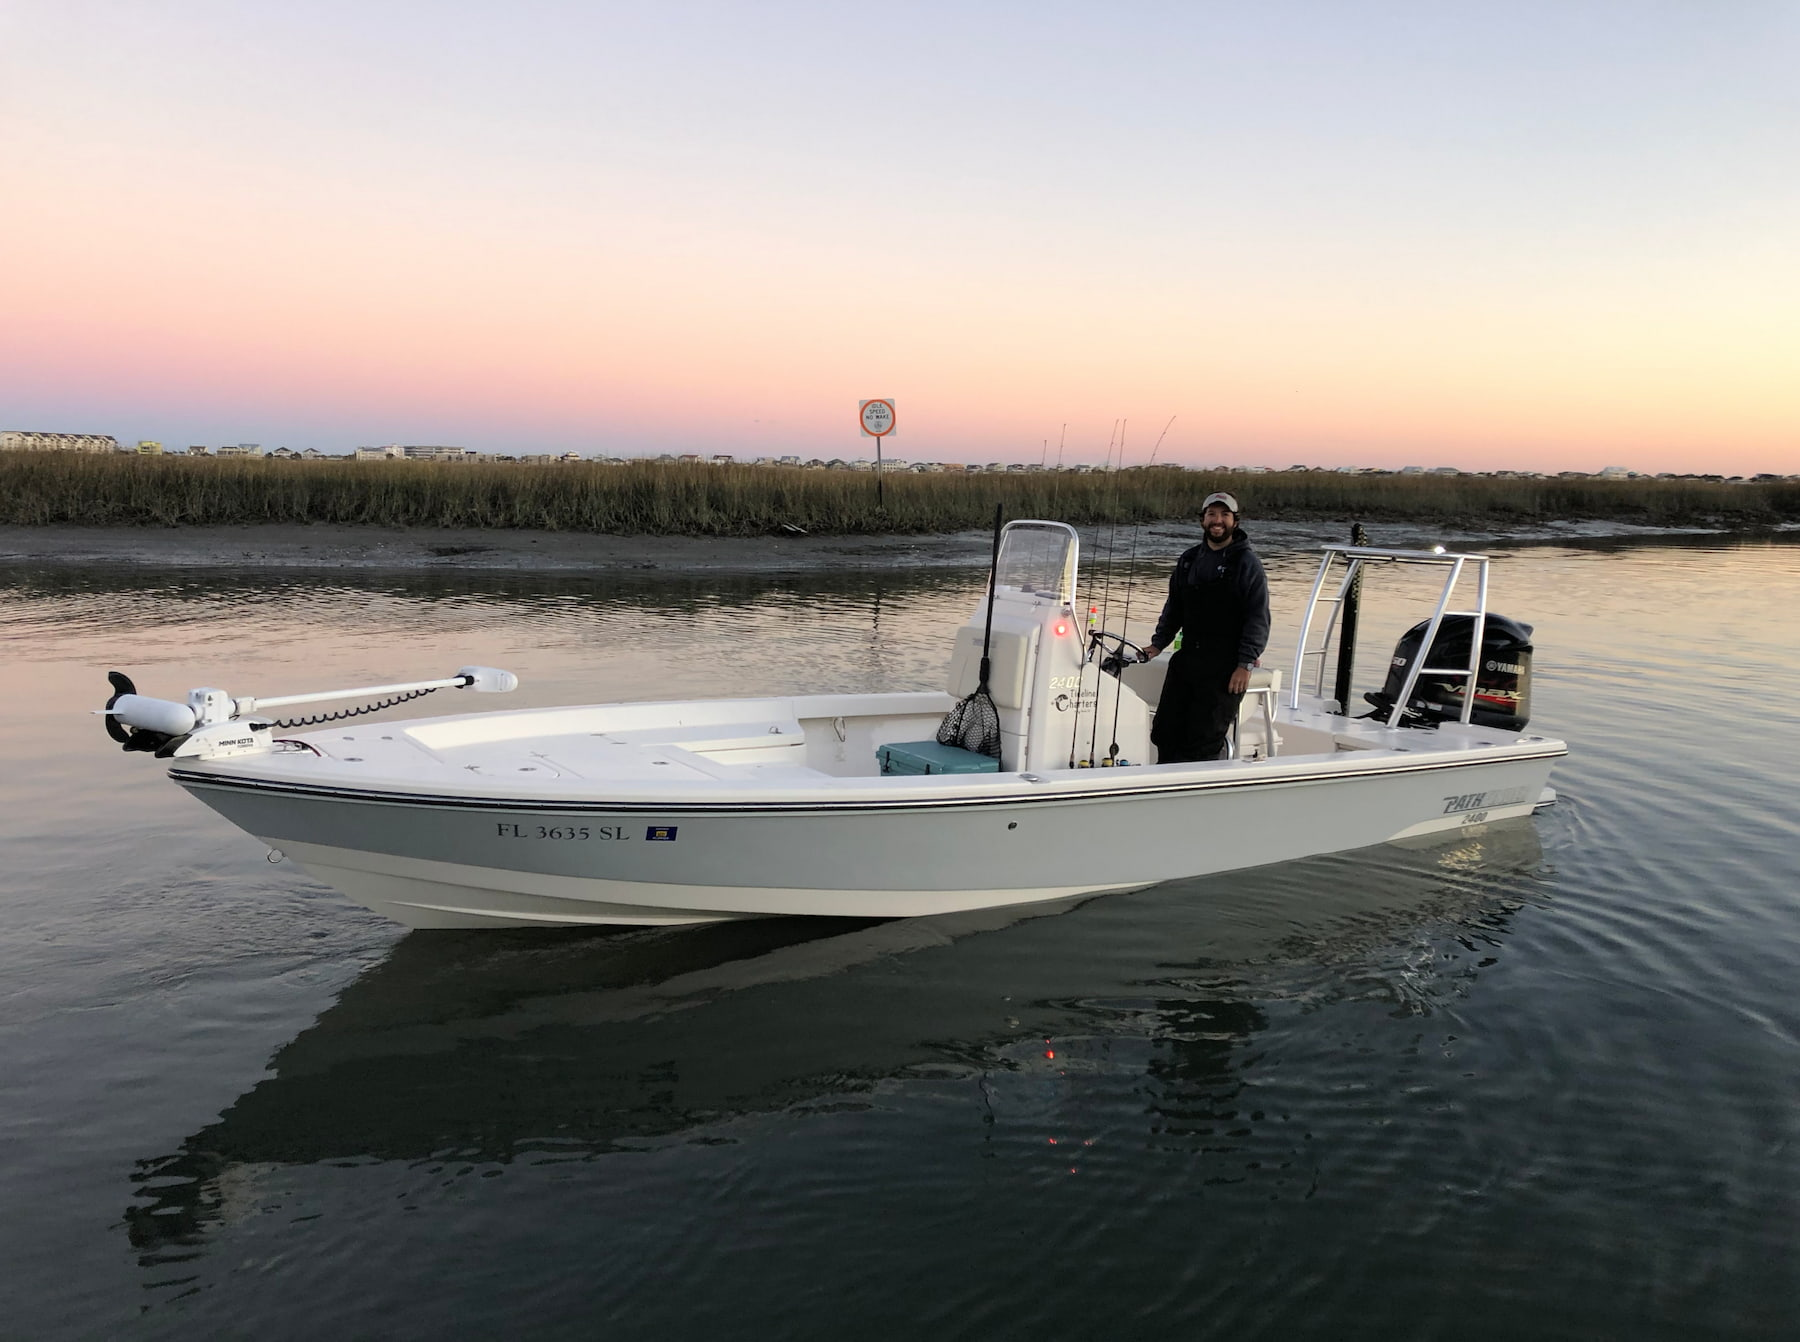 Tideline Charters of Sunset Beach offers inshore fishing tours